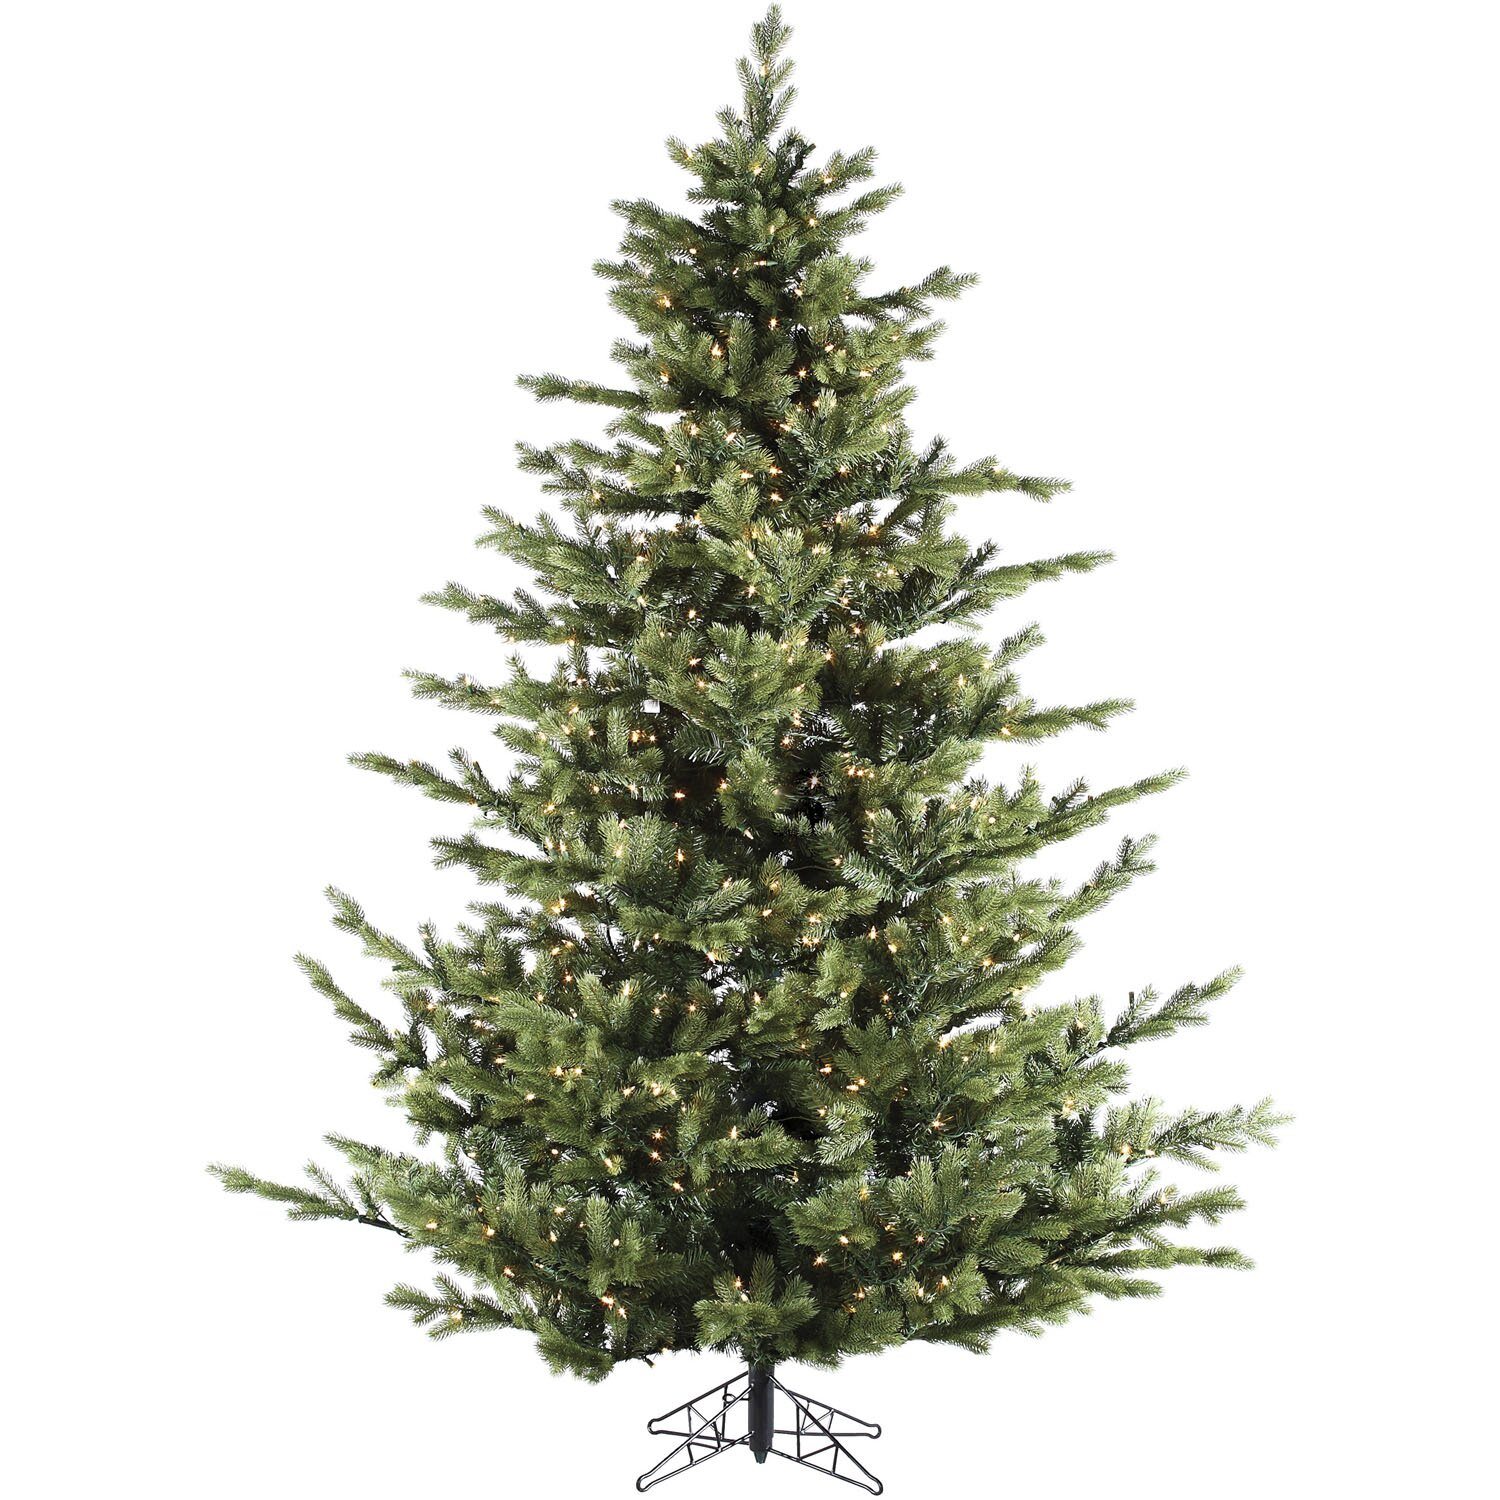 How To String Lights On A Fake Christmas Tree : Fraser Hill Farm Foxtail Pine 7.5 Green Artificial Christmas Tree with 900 LED String Multi ...